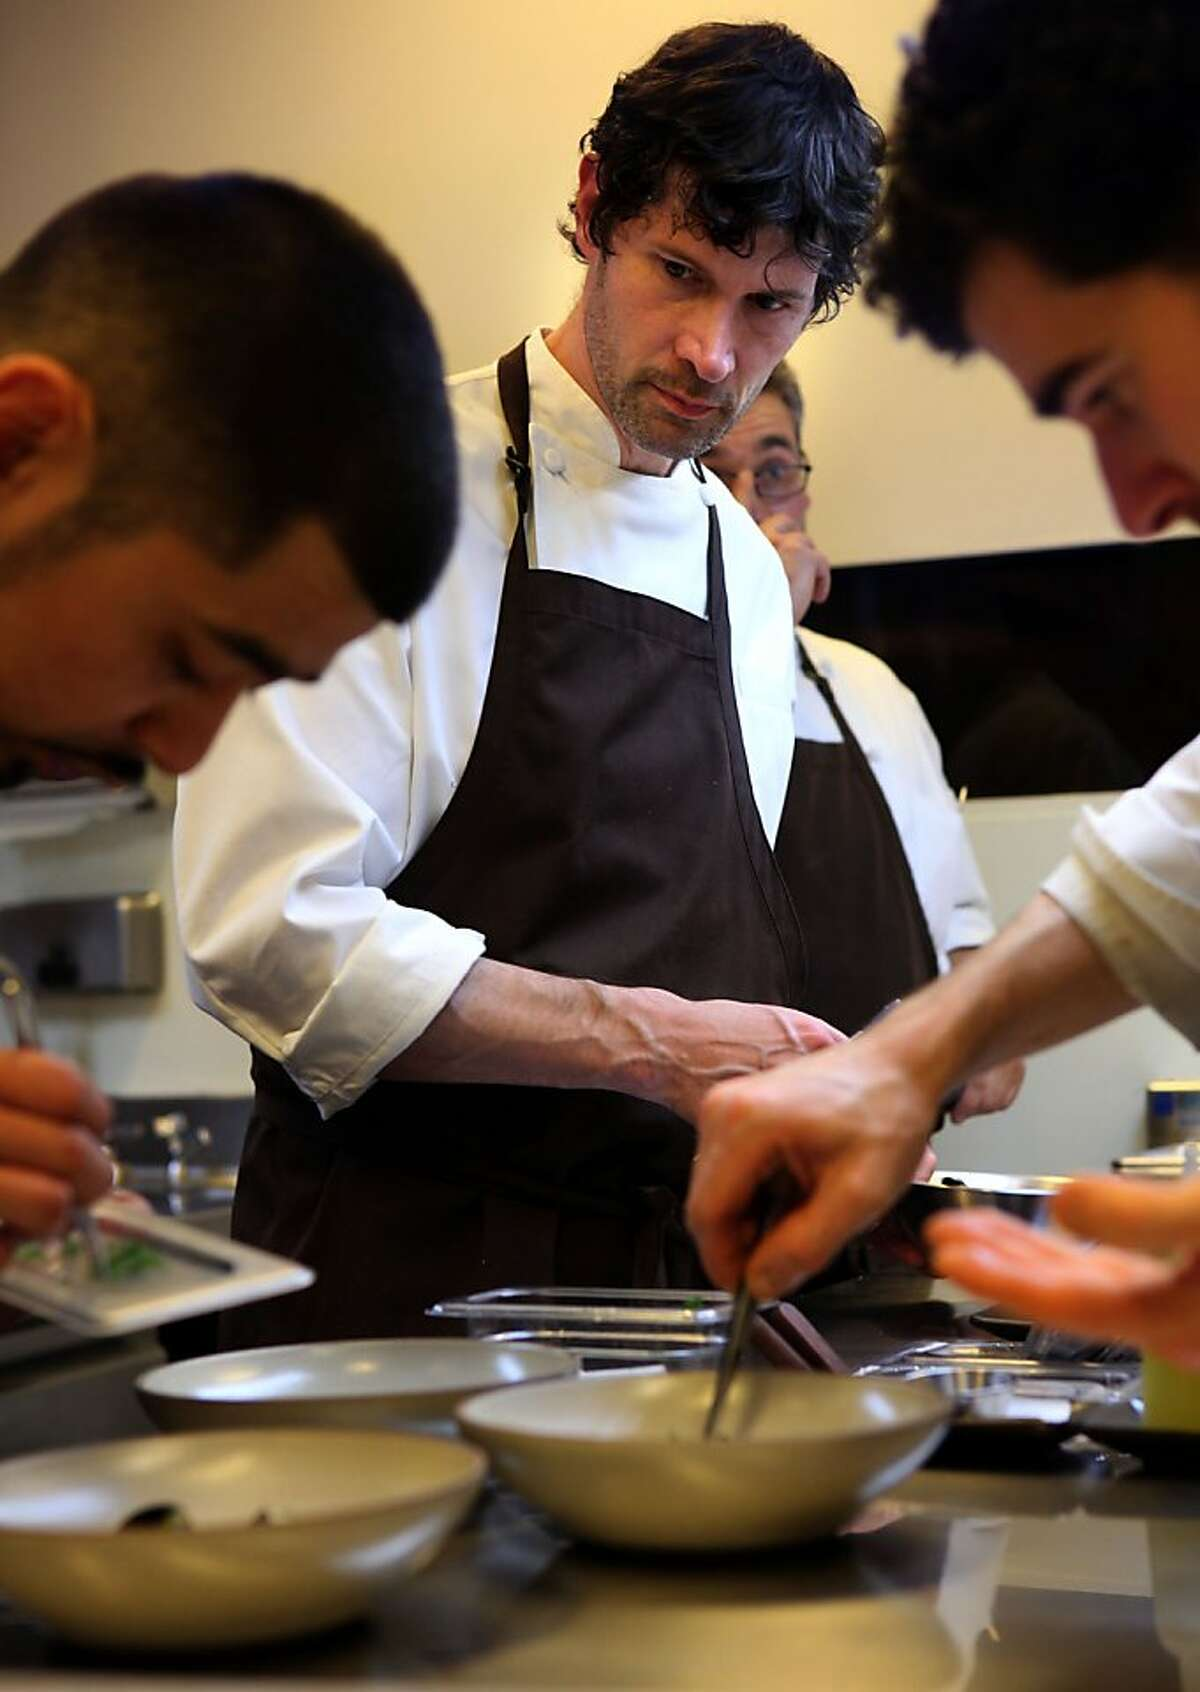 Four-star chef Daniel Patterson of Coi keeps watches his chefs while plating dishes.